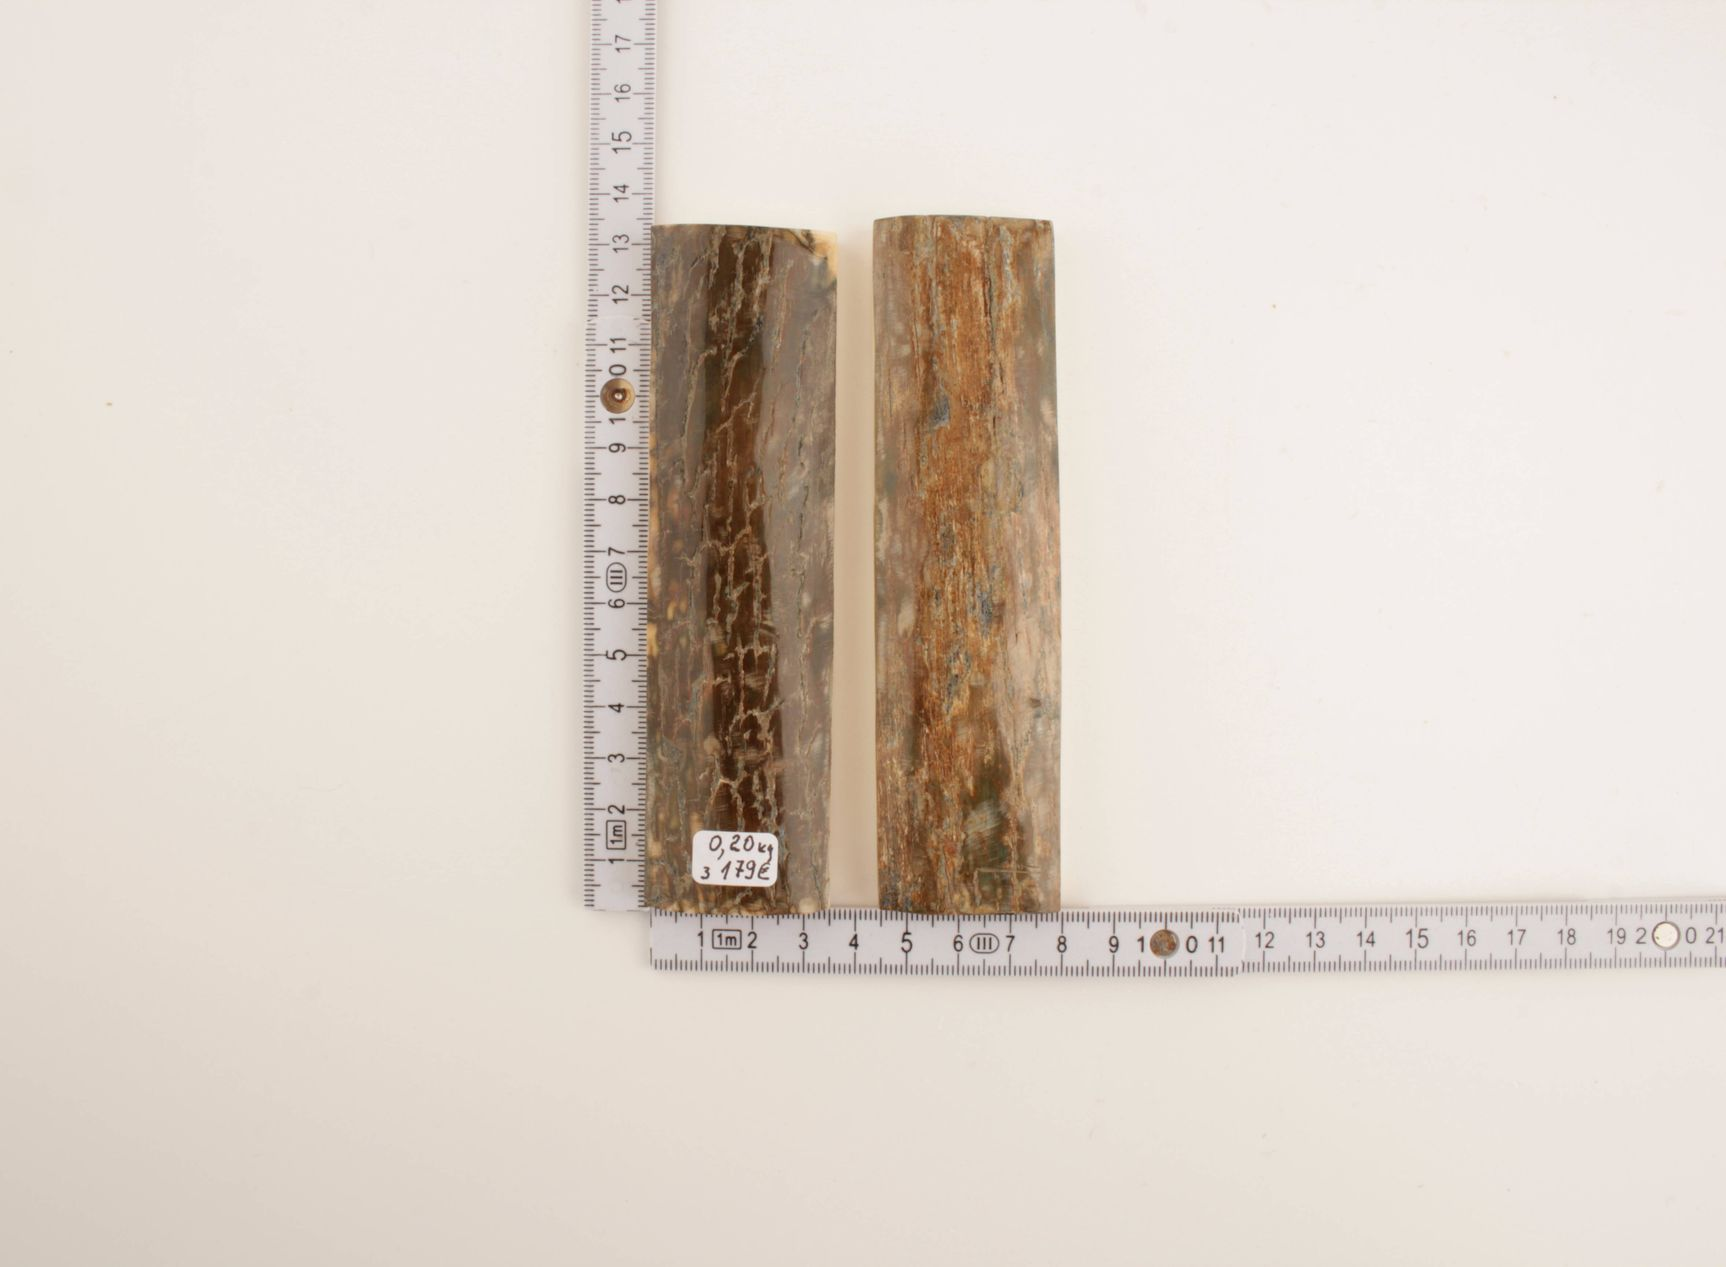 Green-beige natural mammoth bark scales